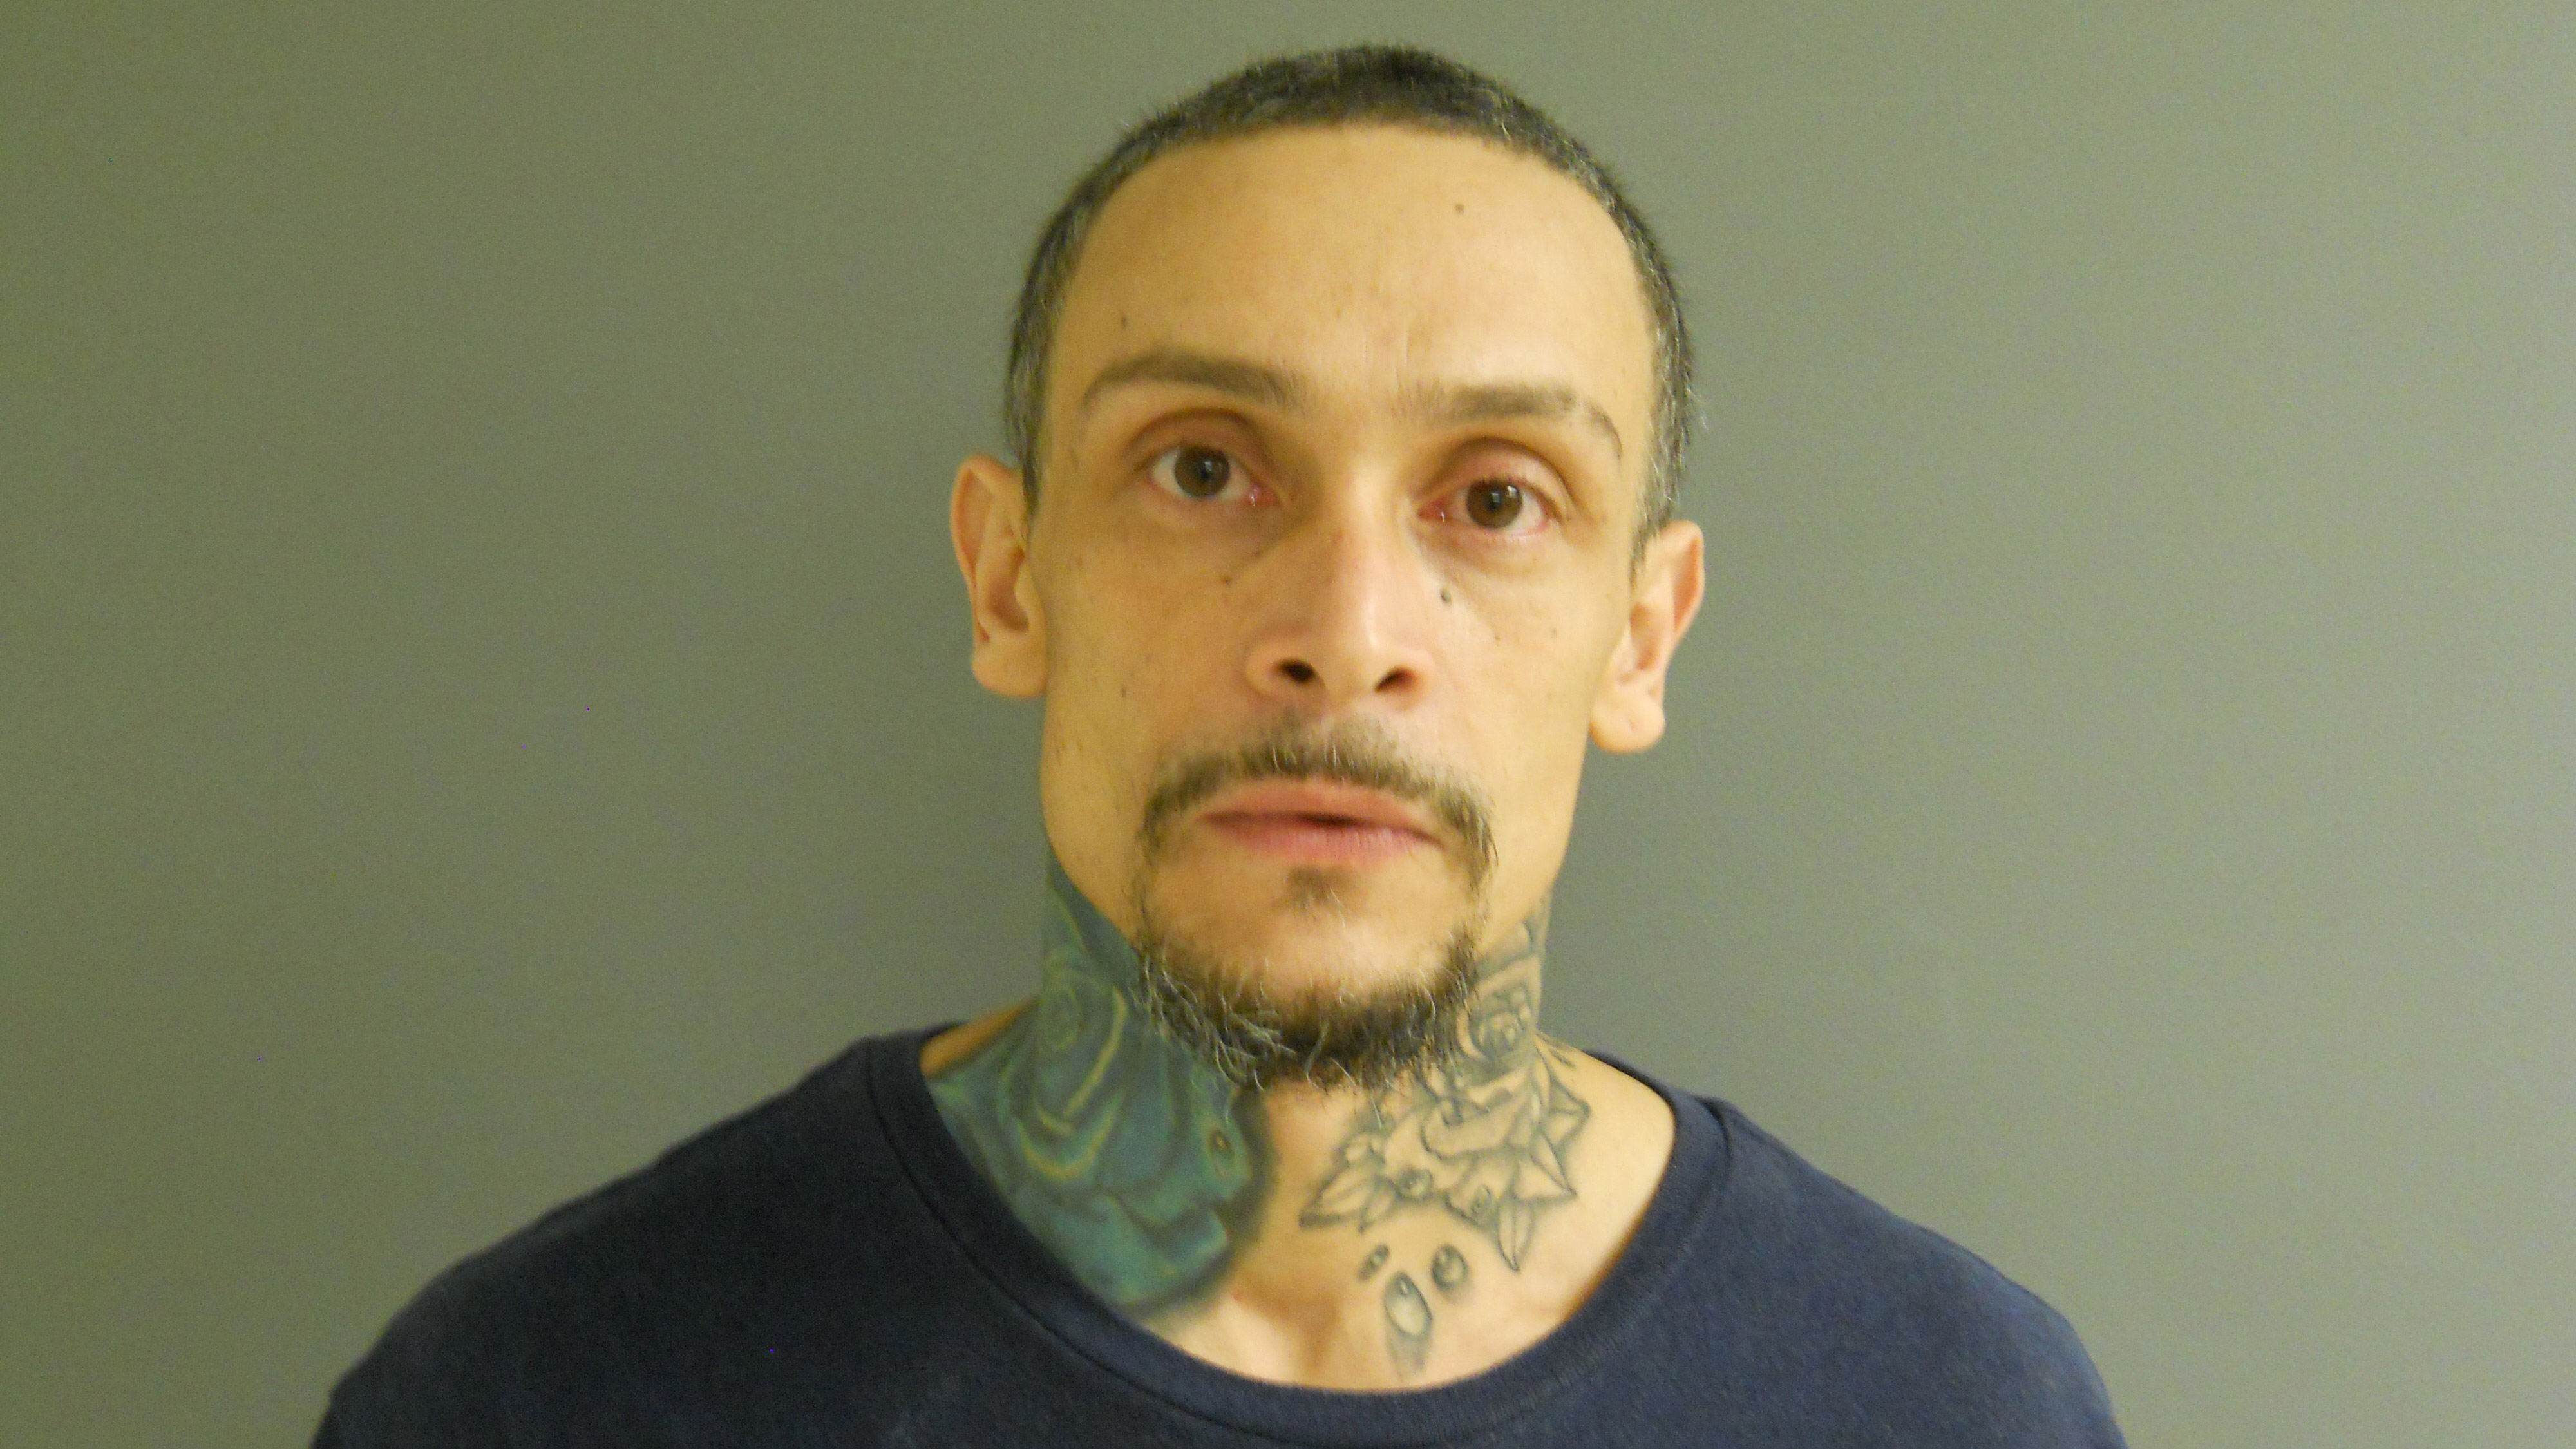 Fernando Irizzary, 41, of Willimantic is accused of posting a threatening video on Facebook regarding a DCF worker and a Superior Court judge.